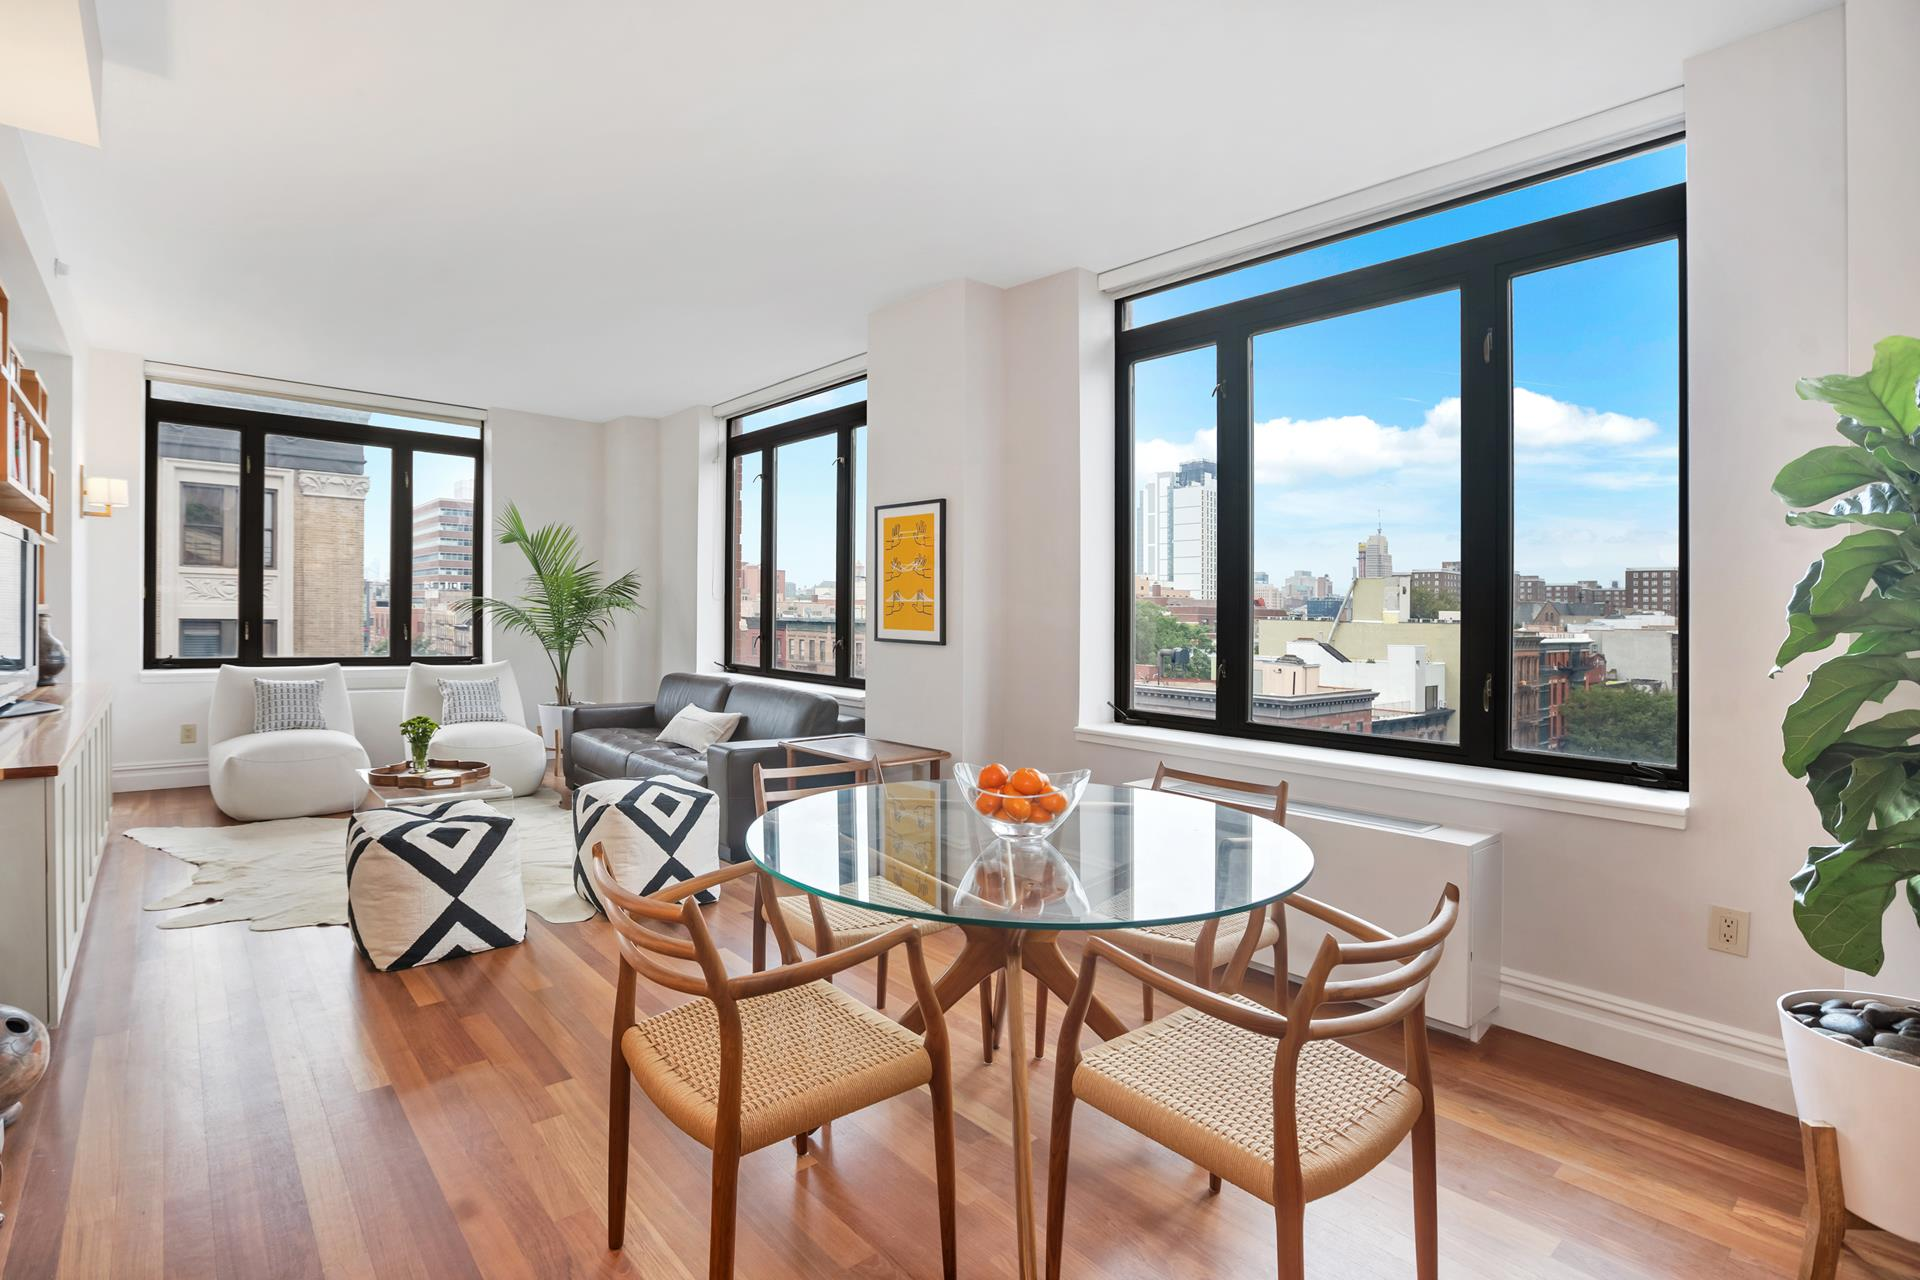 """Available for the first time as a re-sale, this rarely available """"D"""" line corner unit on the seventh floor of The Lenox features Southern and Western exposures, and open city and skyline views.  Tastefully and thoughtfully designed, this special home is no cookie-cutter.    7D is a 3-bedroom (3BR), 2-bath (2BA) located in Central Harlem's premier full-service luxury building, The Lenox.  Lofty, airy and bright, the home has undergone significant upgrades over the past few months: new hardwood floors, new bath rooms, an opened and re-imagined kitchen featuring stainless steel appliances, generous and efficiently planned closets, raised panelled doors to emphasize ceiling heights, a new washer/dryer and plenty more. A toothbrush is truly all that is required to move in!    This is a floor plan that truly """"flows."""" The gracious 9'4"""" x 12'2"""" foyer marks the perfect private entry into the home, with plenty of closets to house your day-to-day needs. This is also where W/D is located. Continuing down the hall, the cavernous primary bedroom   (16' x 11') is set apart from bedrooms two and three and features an en-suite bath and spectacular closet space. The showstopper is the open kitchen and living / dining room featuring both southern and western exposures, overlooking Lenox Avenue. The second   bedroom features a walk-in closet, and is side-by-side to the third bedroom.    The Lenox Condominium was built in 2006 and features a gym, garage, full time doorman and live-in super. There is a tax abatement in place until 2033.  The building is located in central Harlem a few short blocks from Whole Foods and the 2 and 3 express subways.   Sylvia's, Red Rooster and Corner Social are just some of the culinary hotspots located just a few blocks from your future front door."""